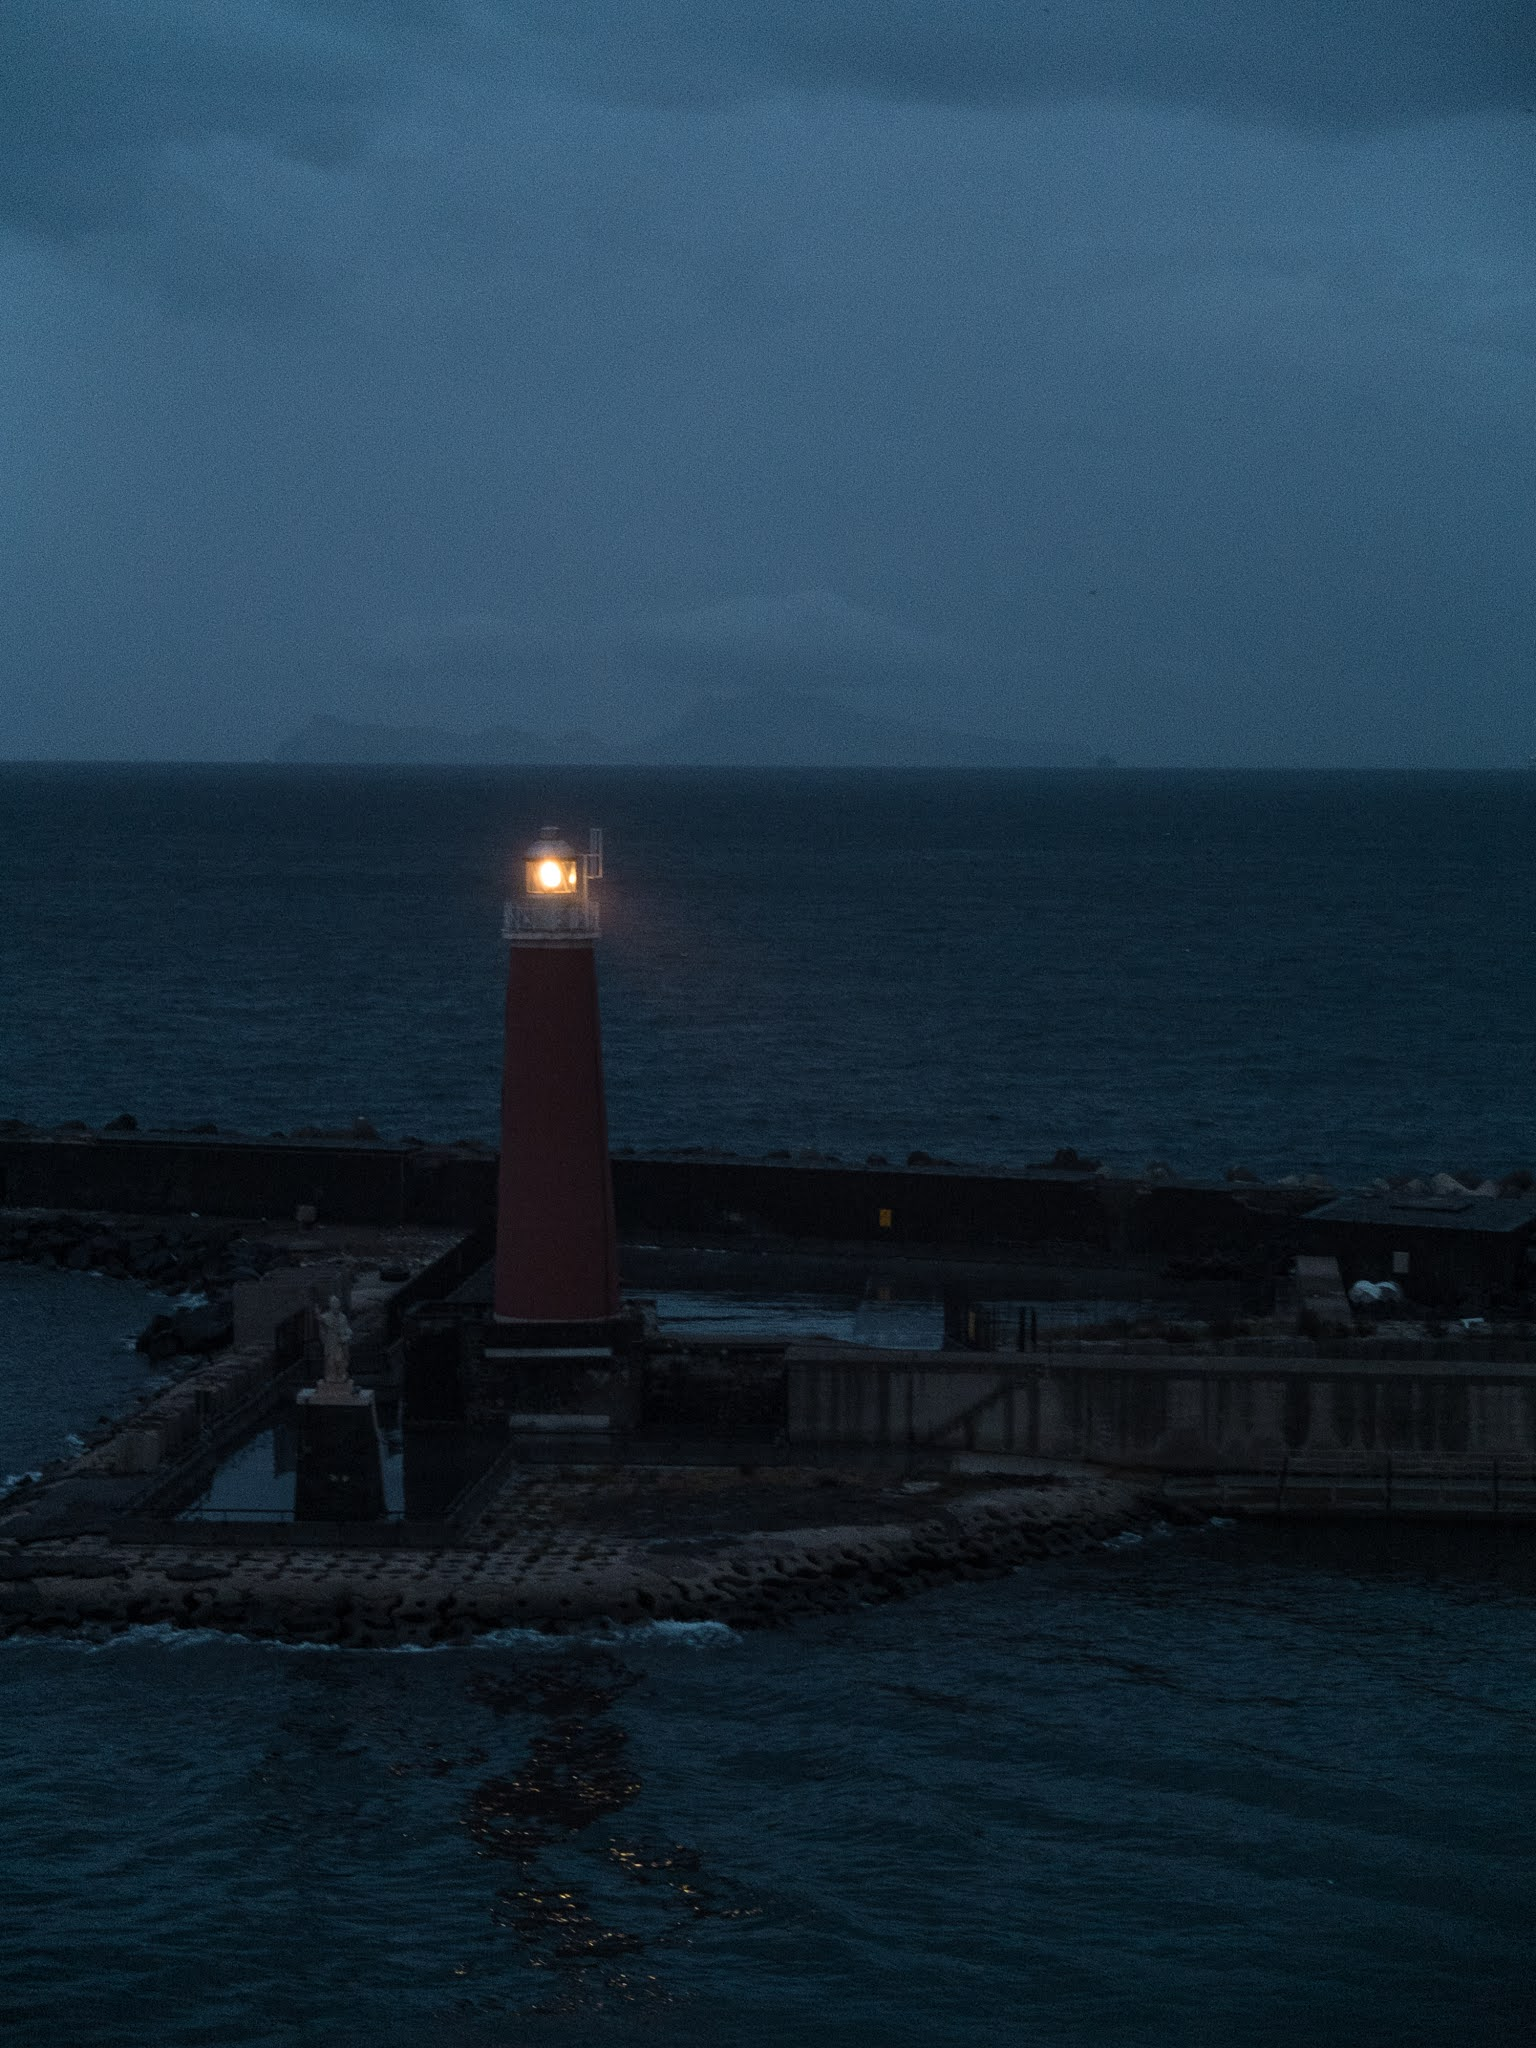 Molo San Vincenzo Lighthouse in the Port of Naples photographed at dusk.